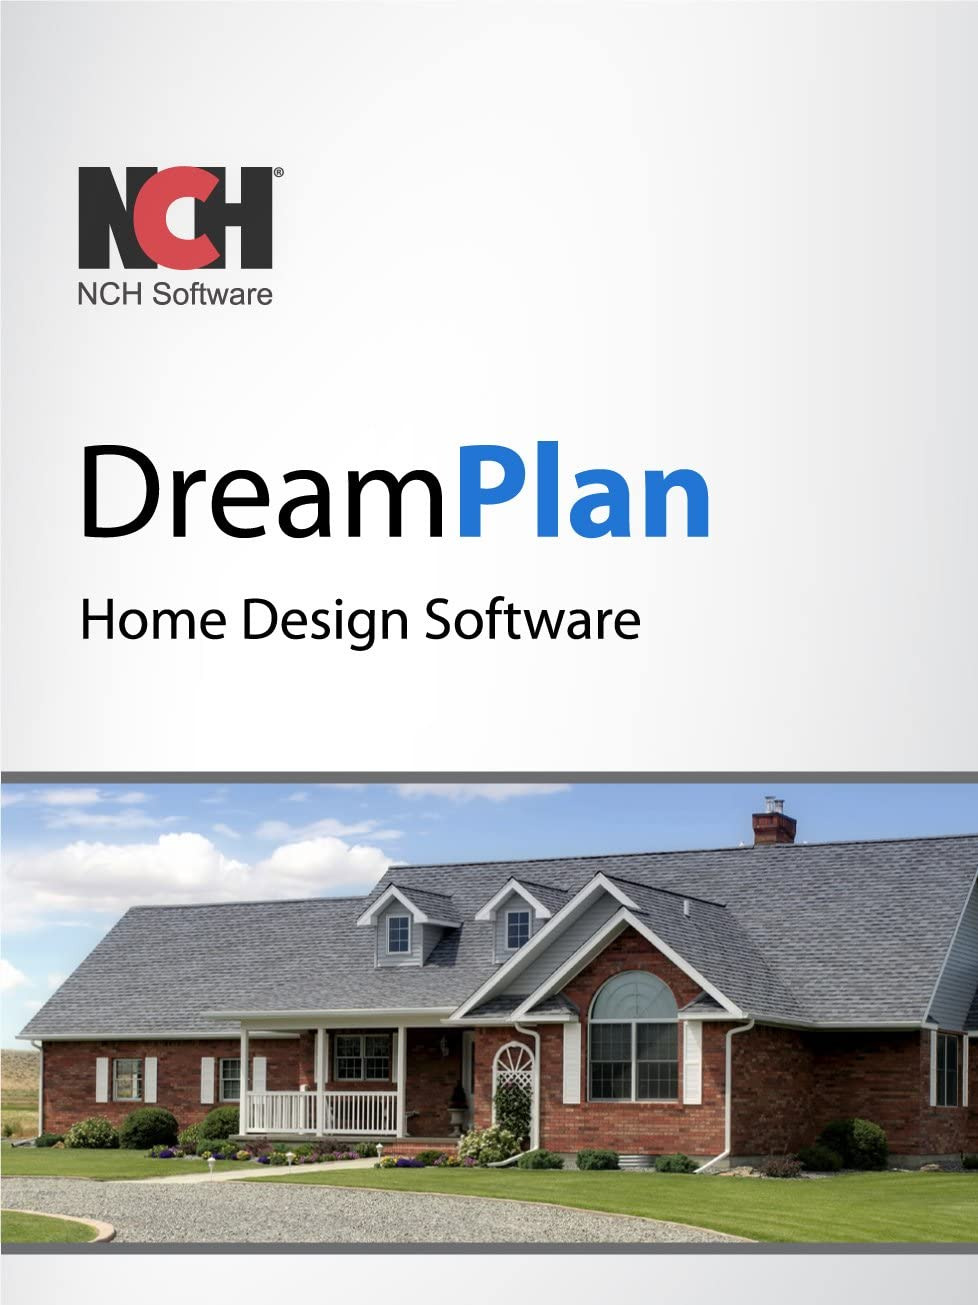 3d House Plan Design software Free Download Elegant Dreamplan Home Design and Landscaping software Free for Windows [pc Download]